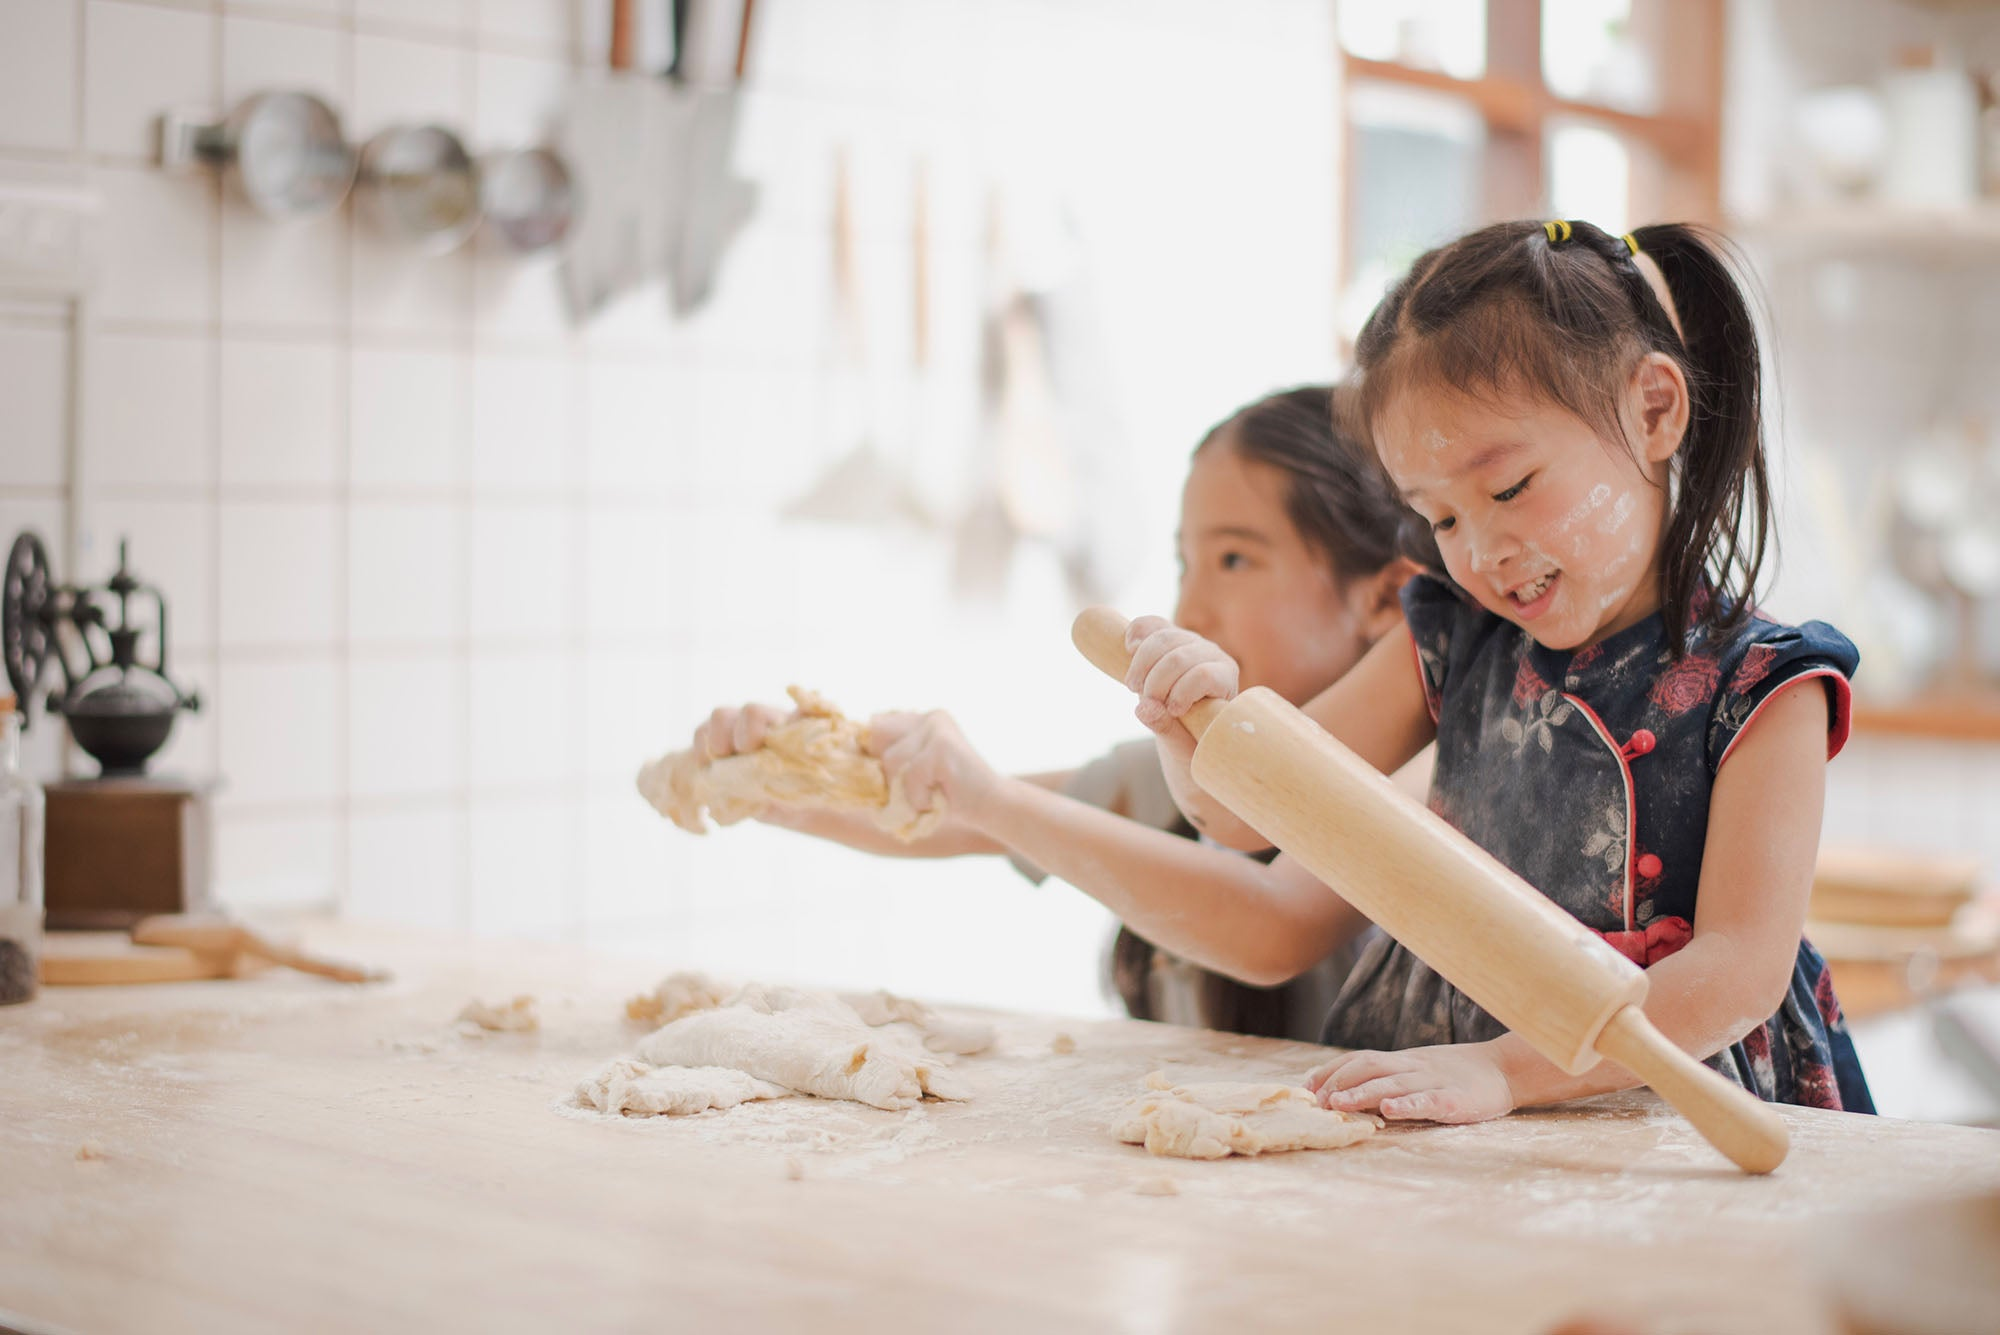 Kids playing with flour and dough in the kitchen